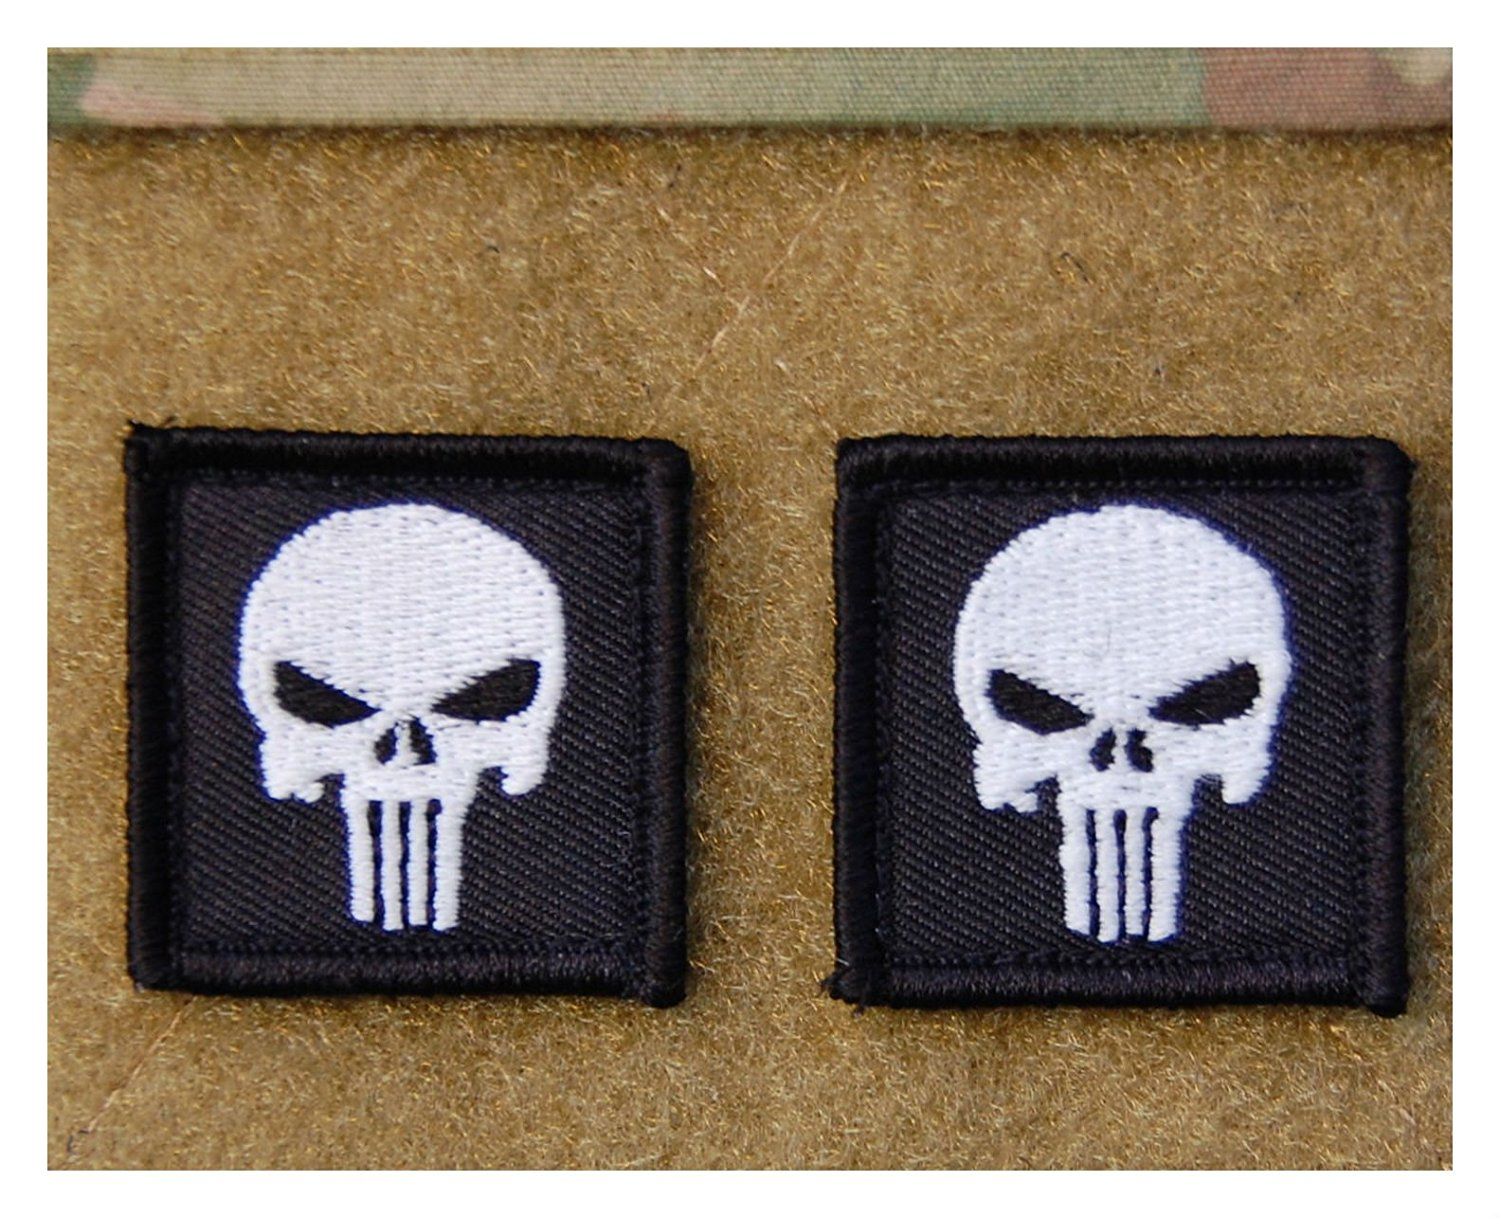 2 x Punisher Skull Mini GITD Glow In The Dark Morale Patch